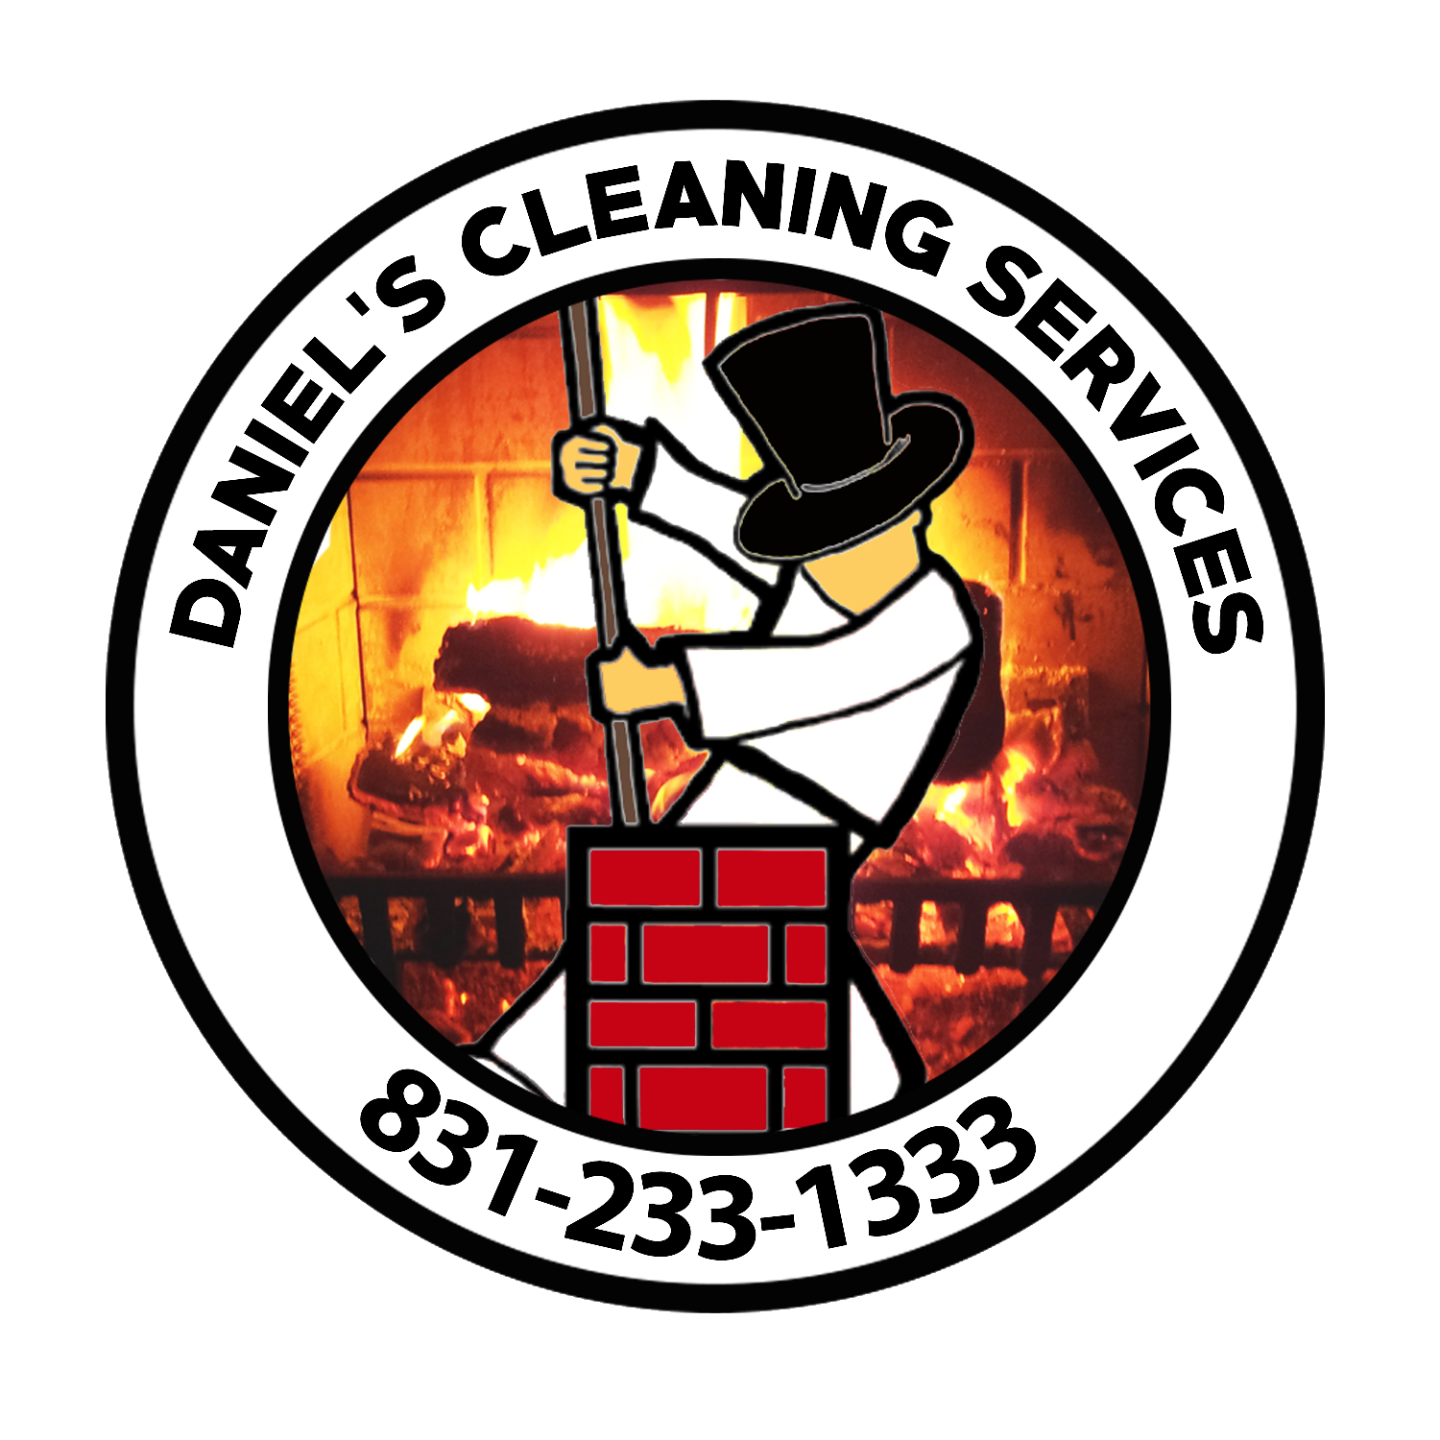 Daniels Cleaning Services